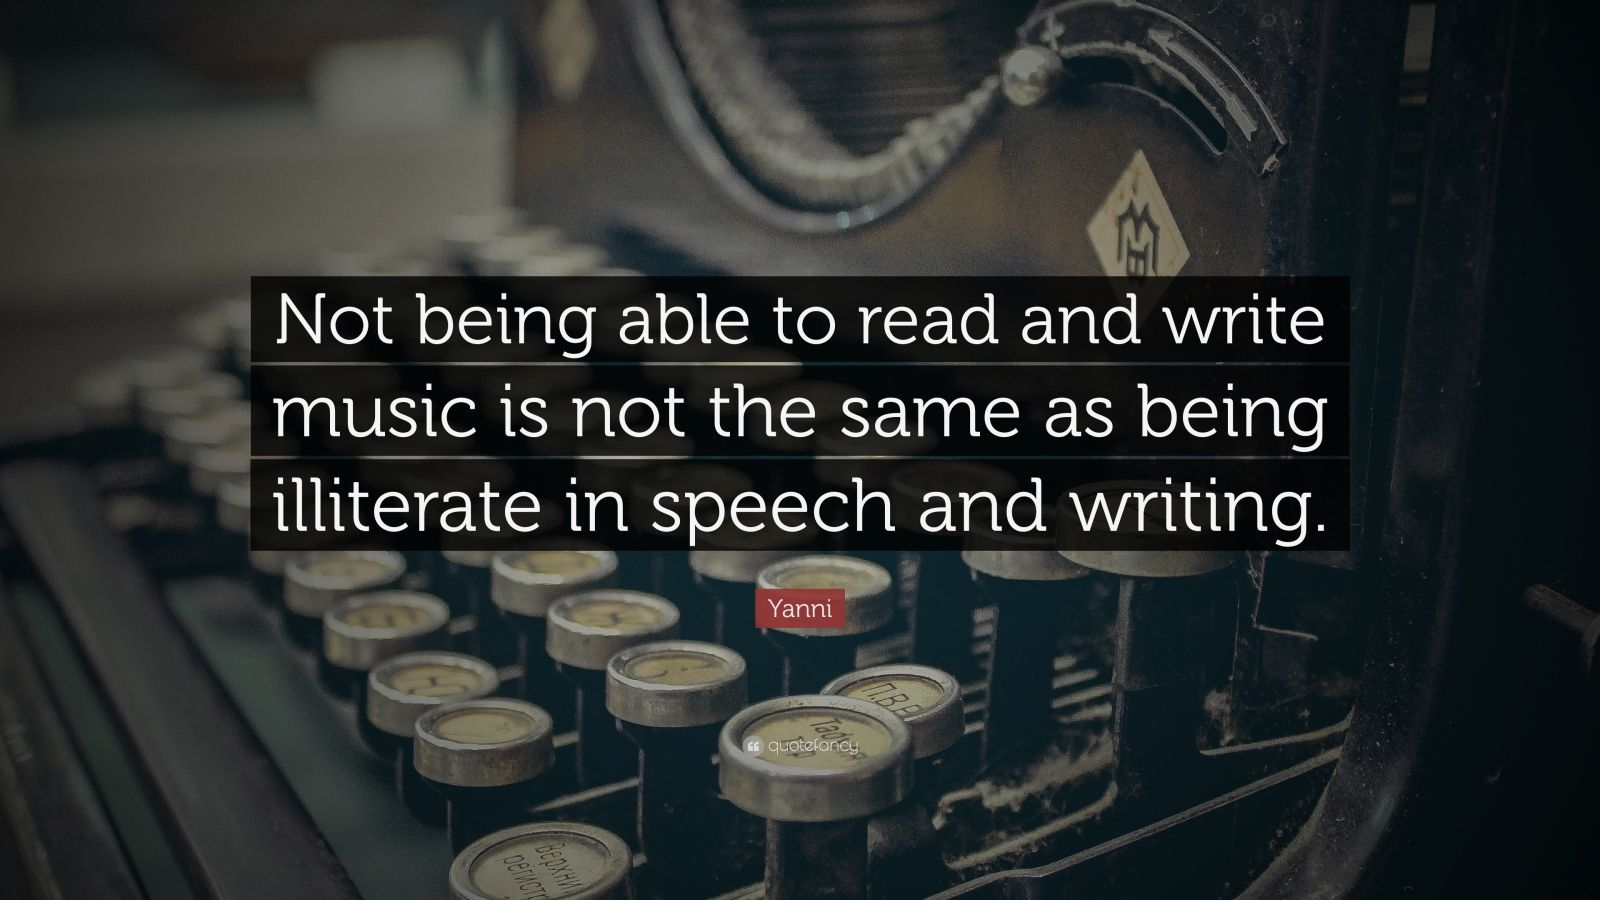 Speech and writing are not synonymous